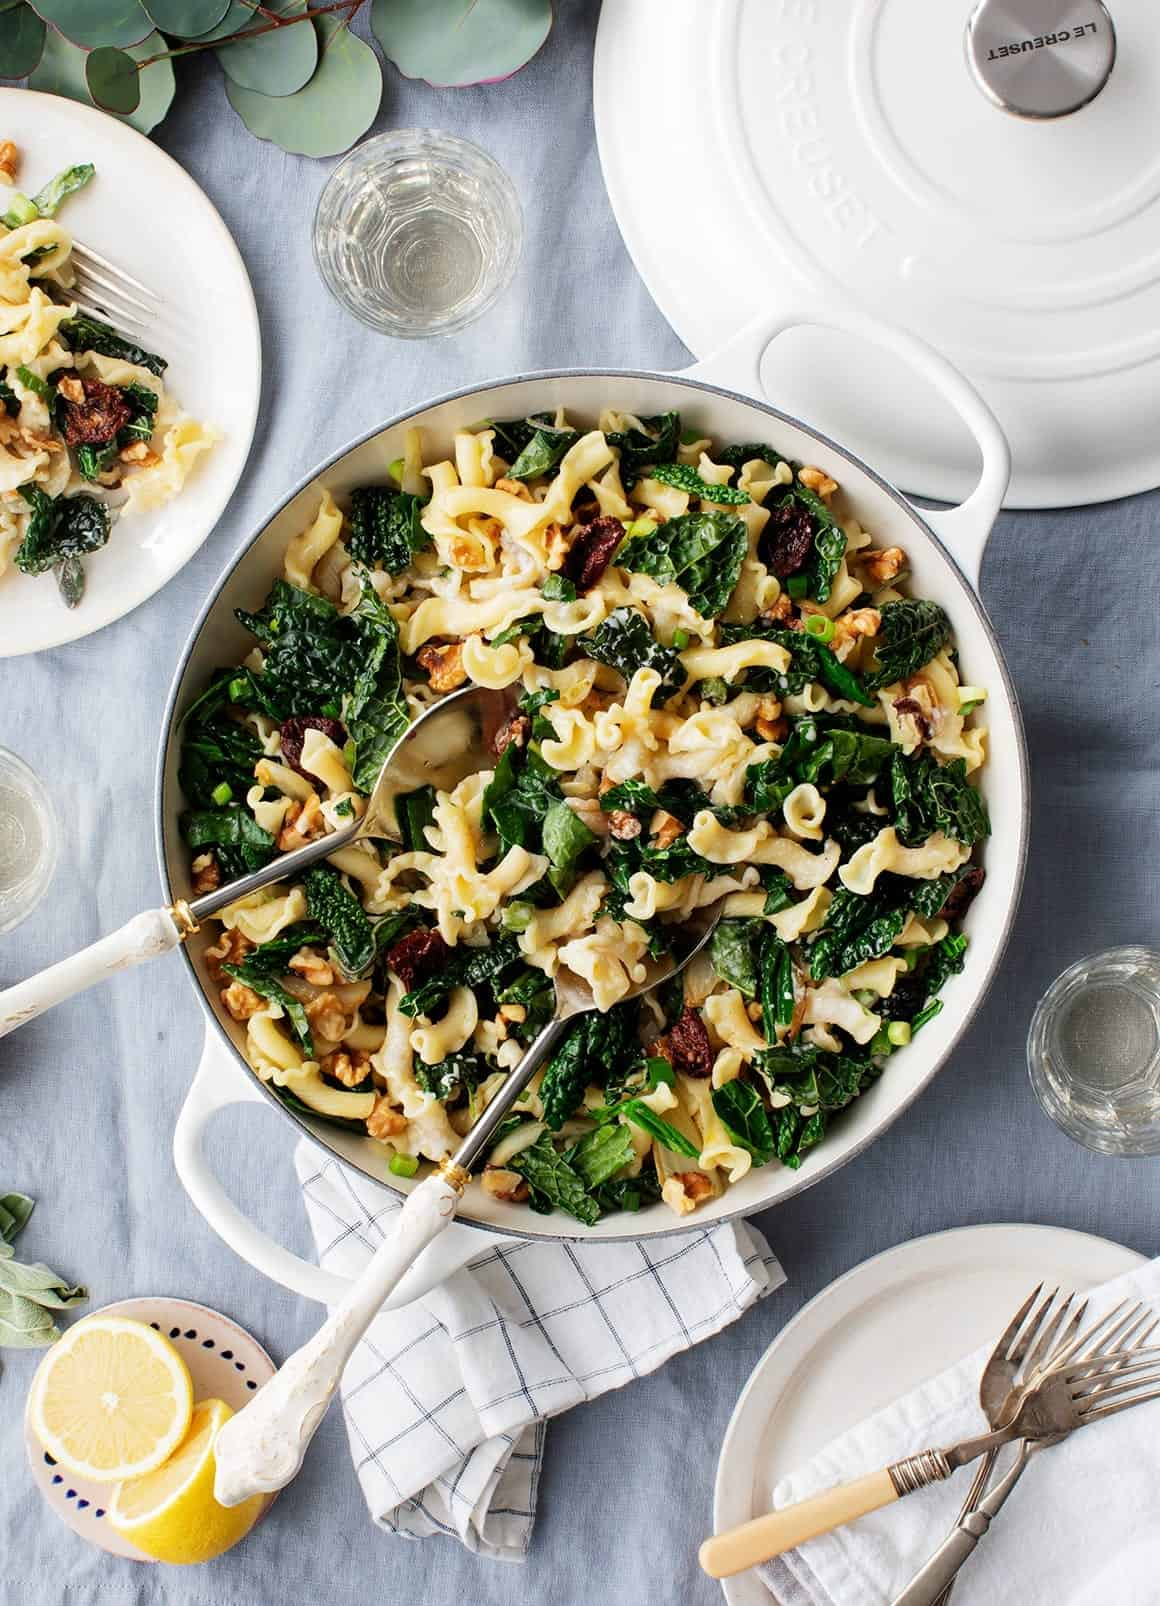 Sun Dried Tomato Pasta with Kale